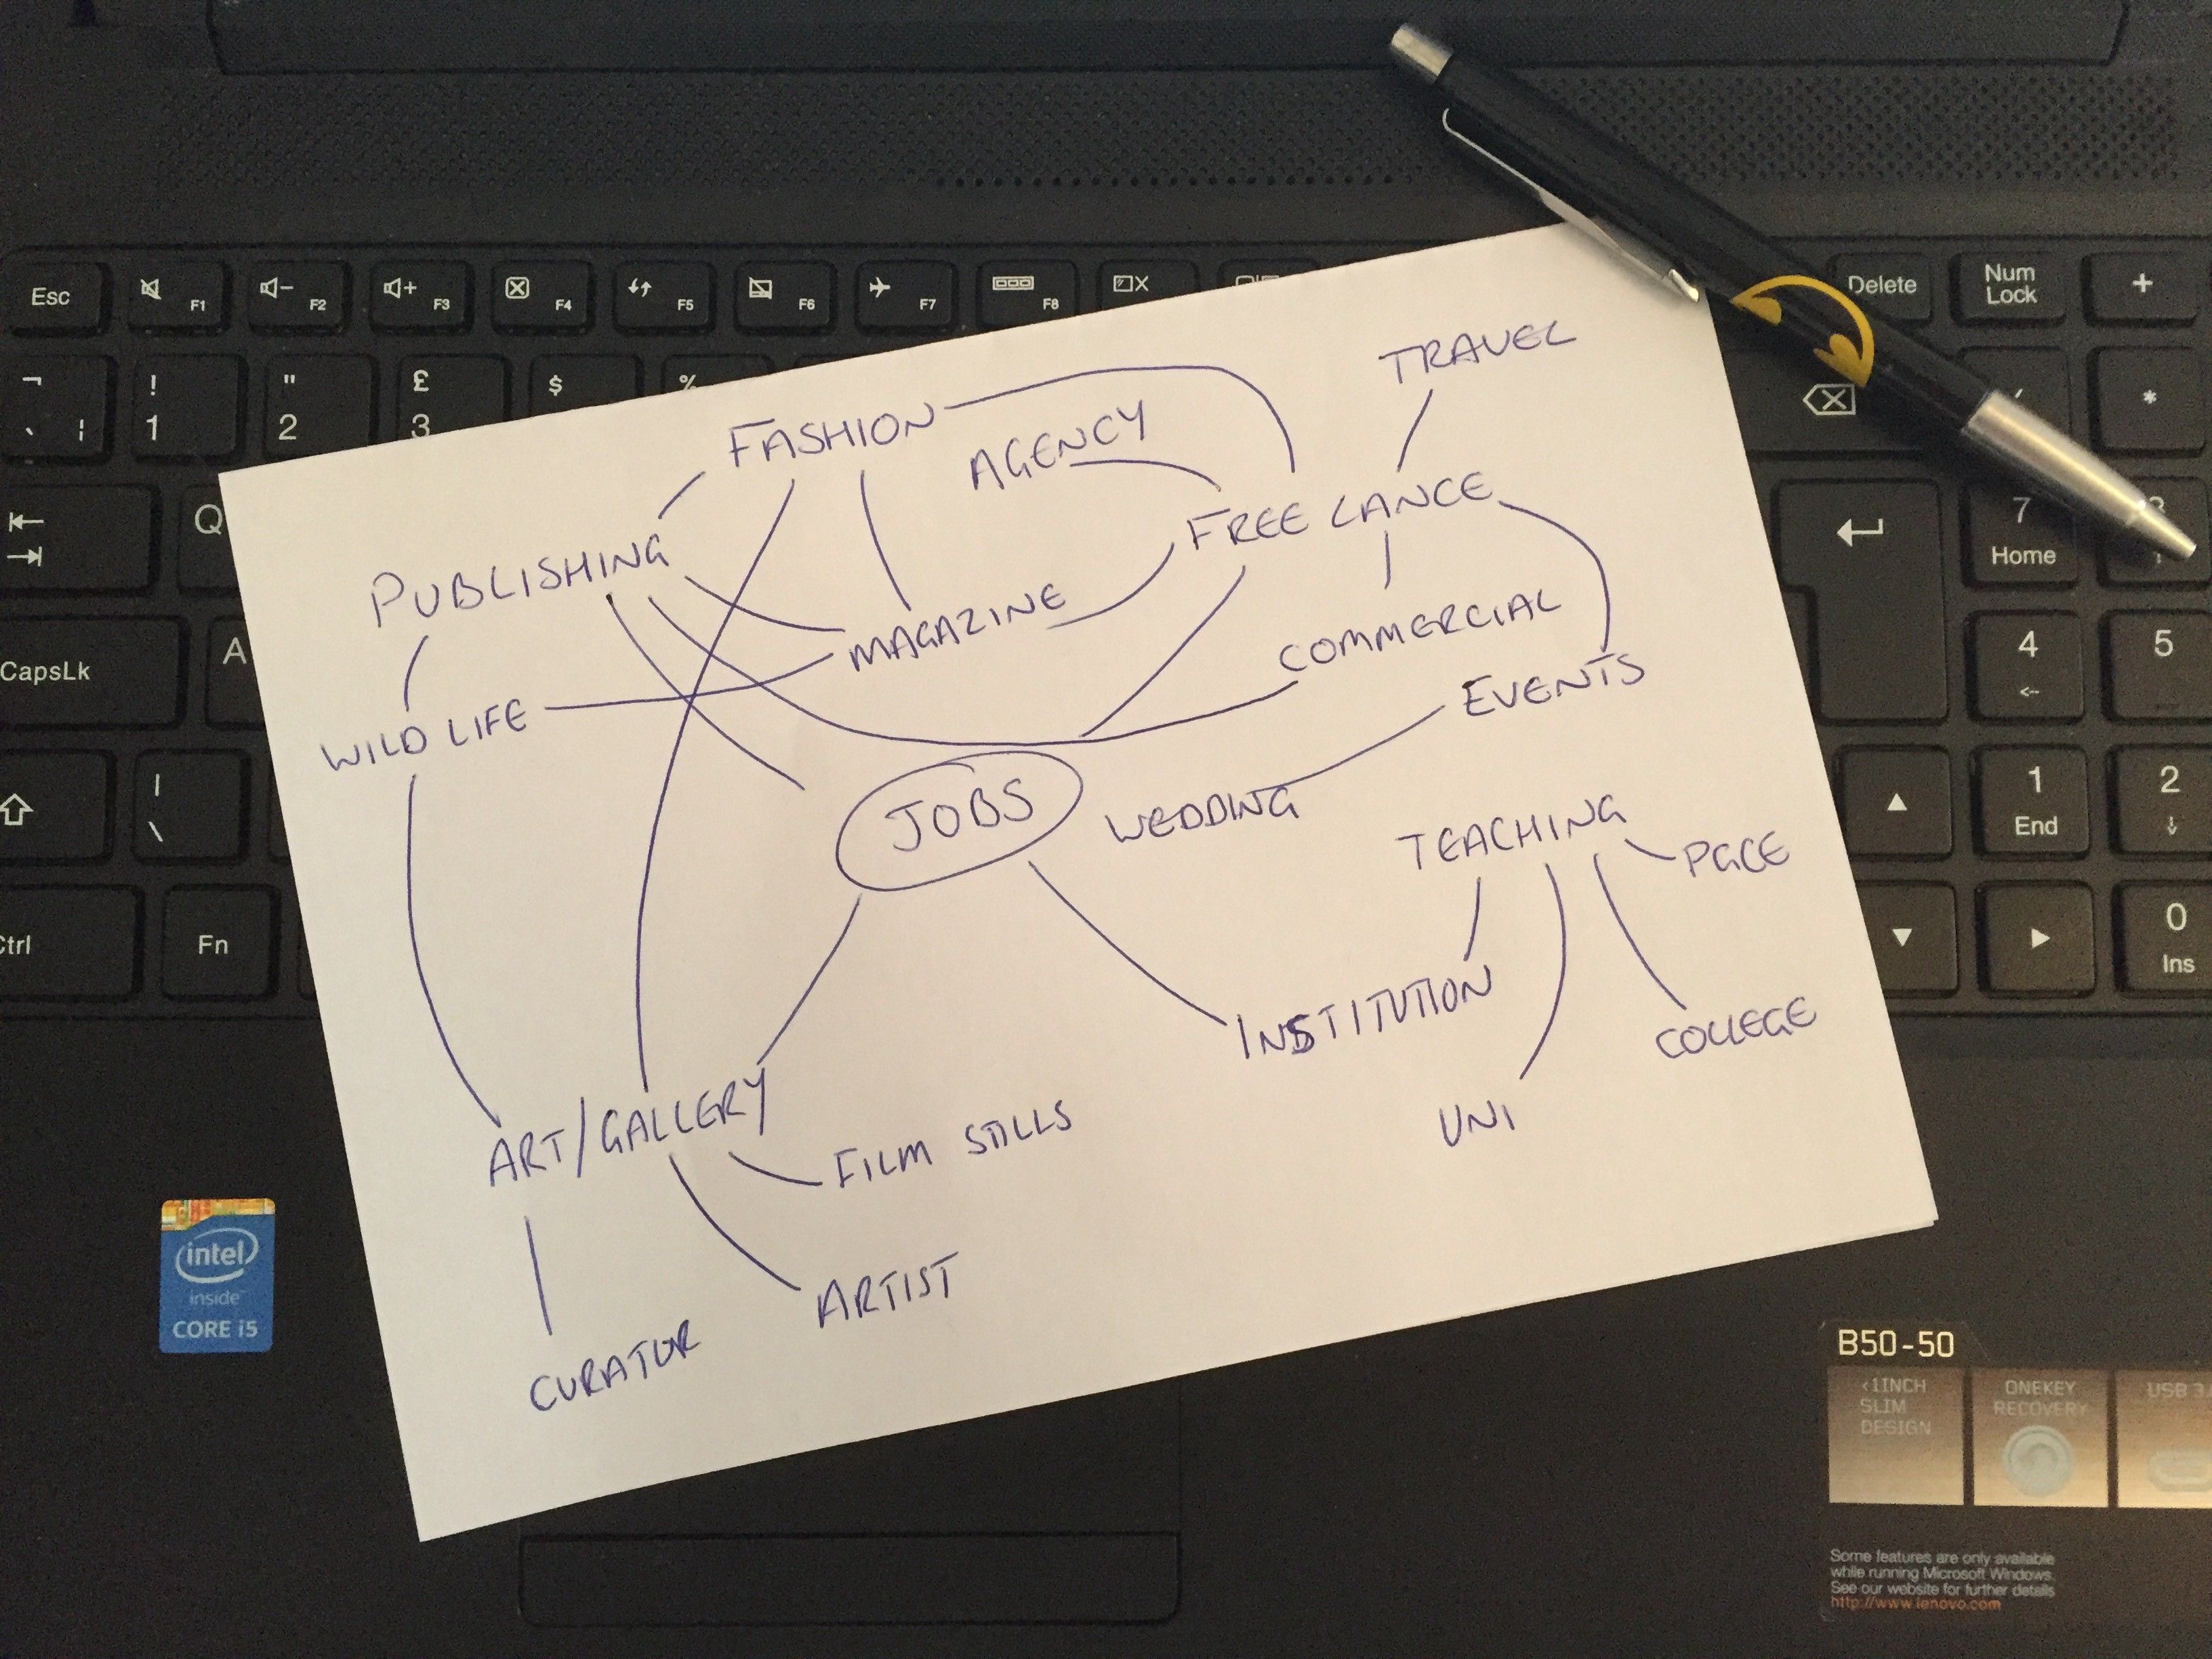 Job Roles Mind Map I Have An Interest In Wedding And Event By Fay Green Medium